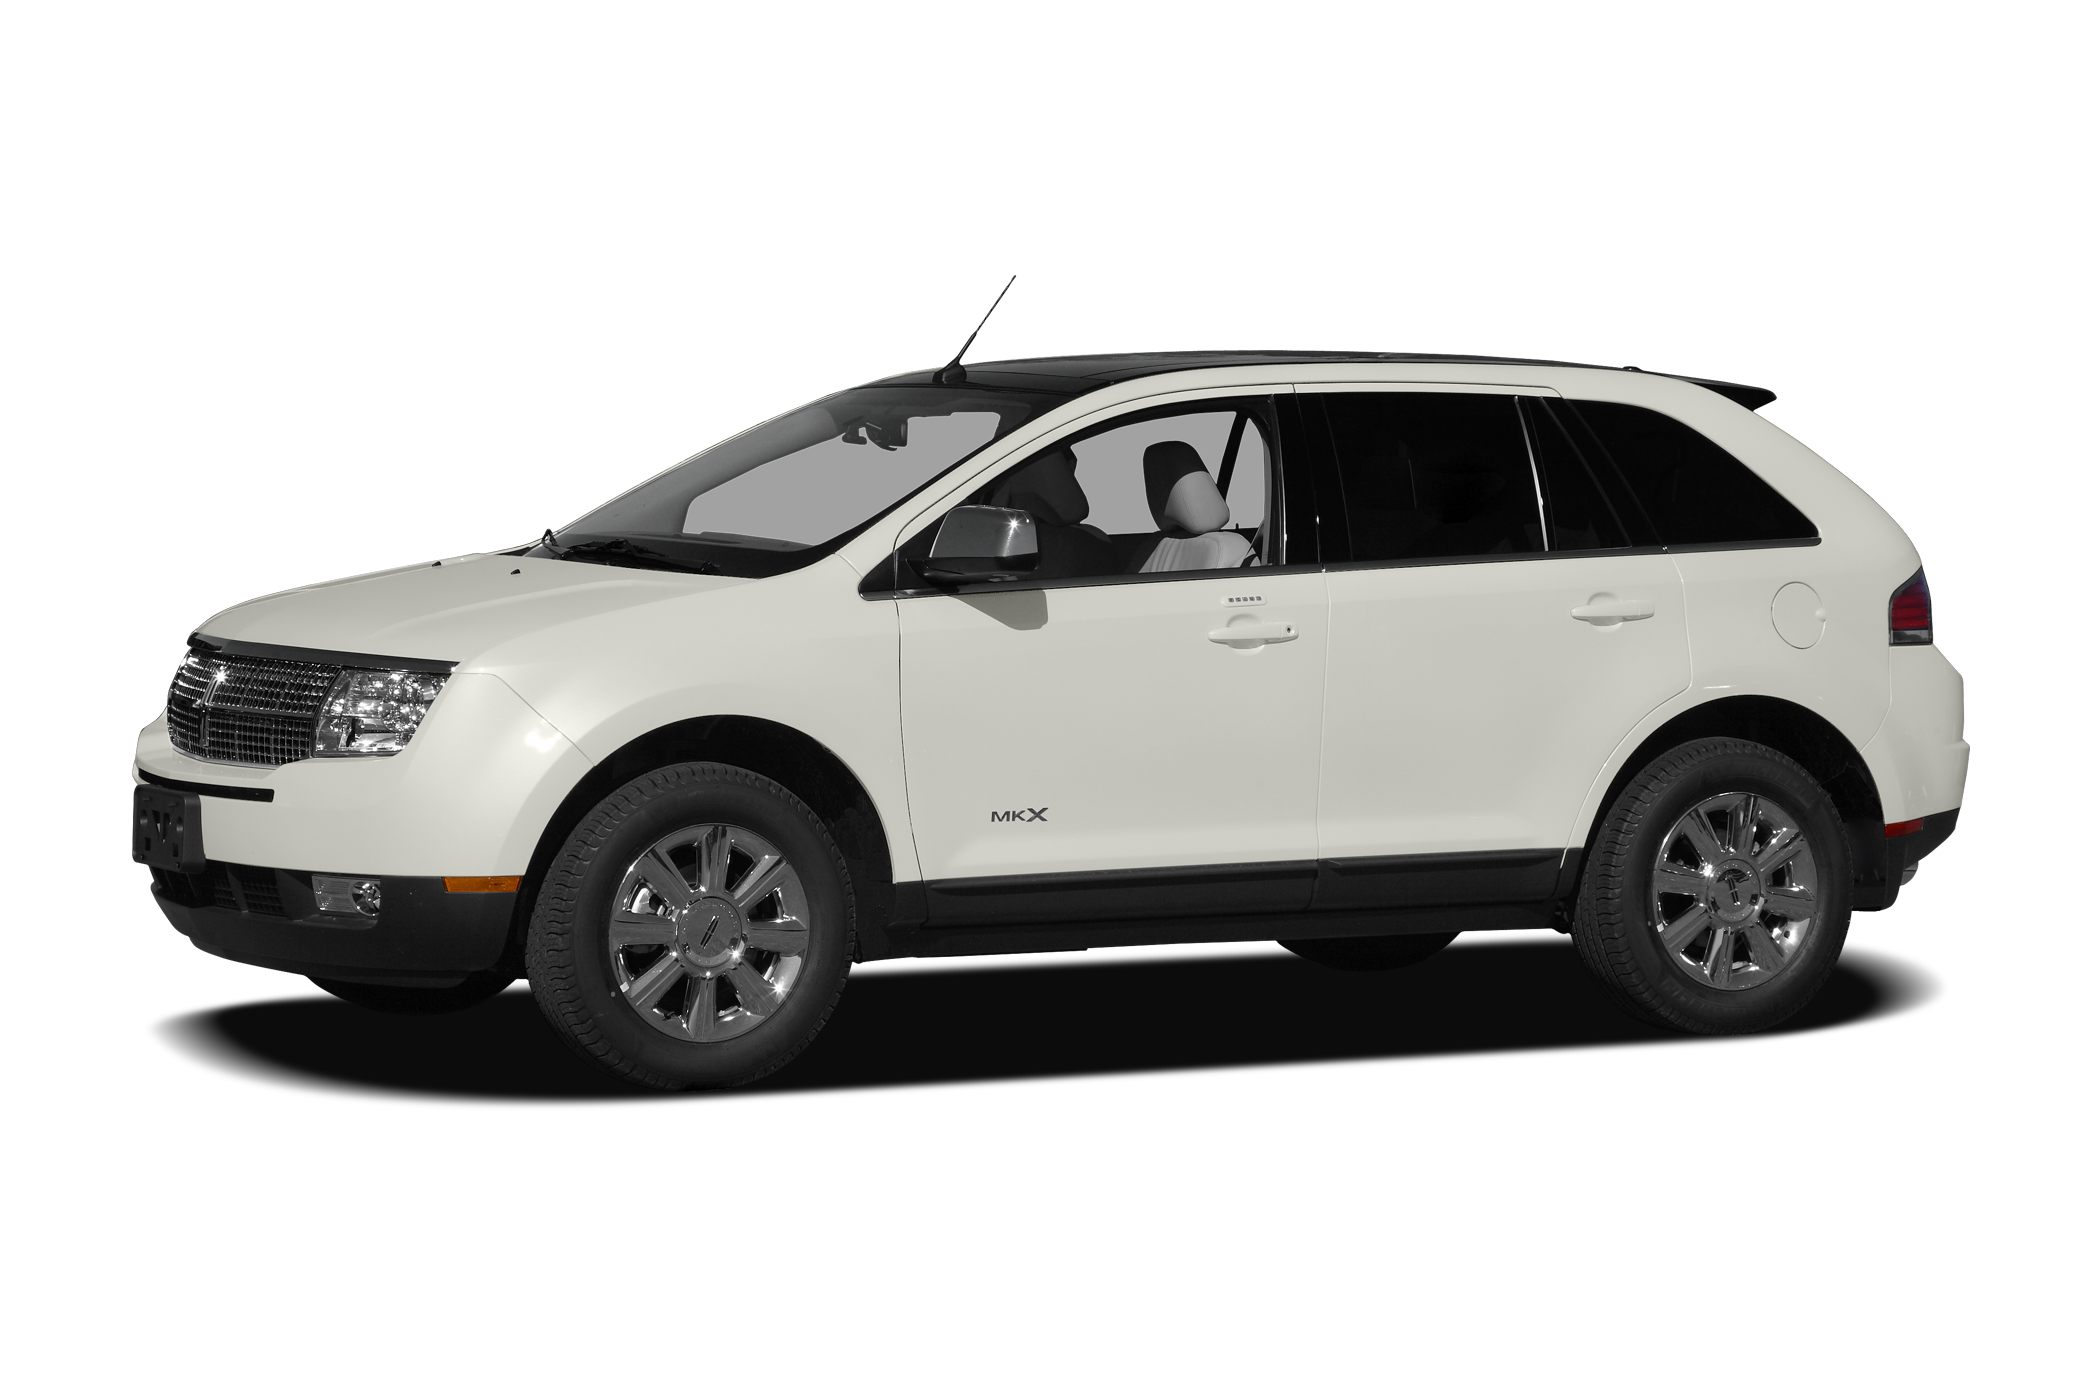 2008 Lincoln MKX SUV for sale in Chillicothe for $18,000 with 44,642 miles.